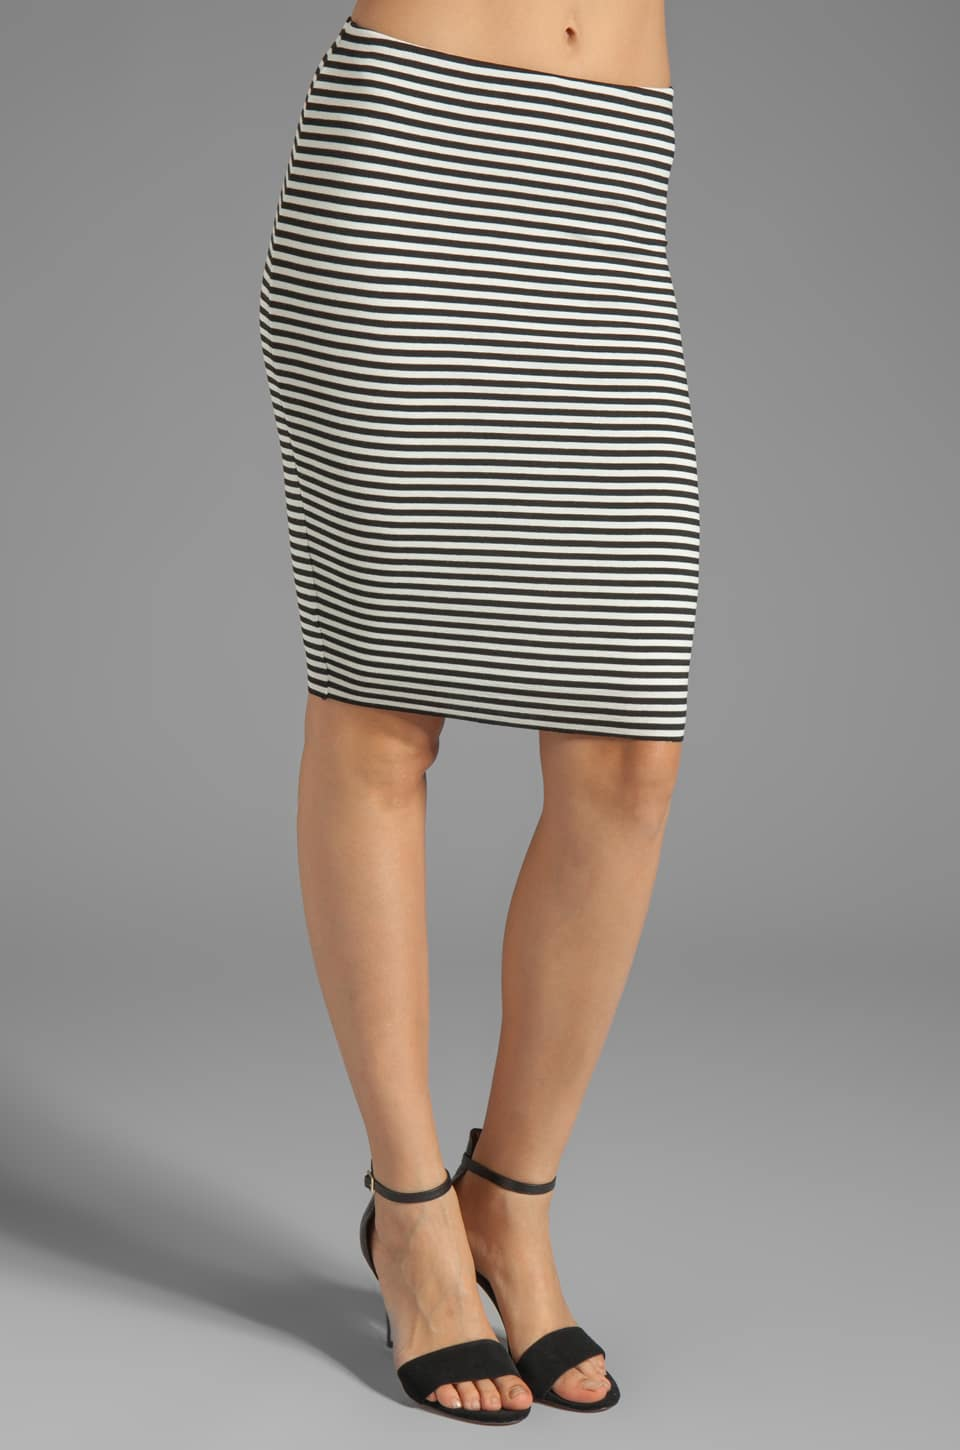 Bailey 44 Shogun Skirt in Black/Creme